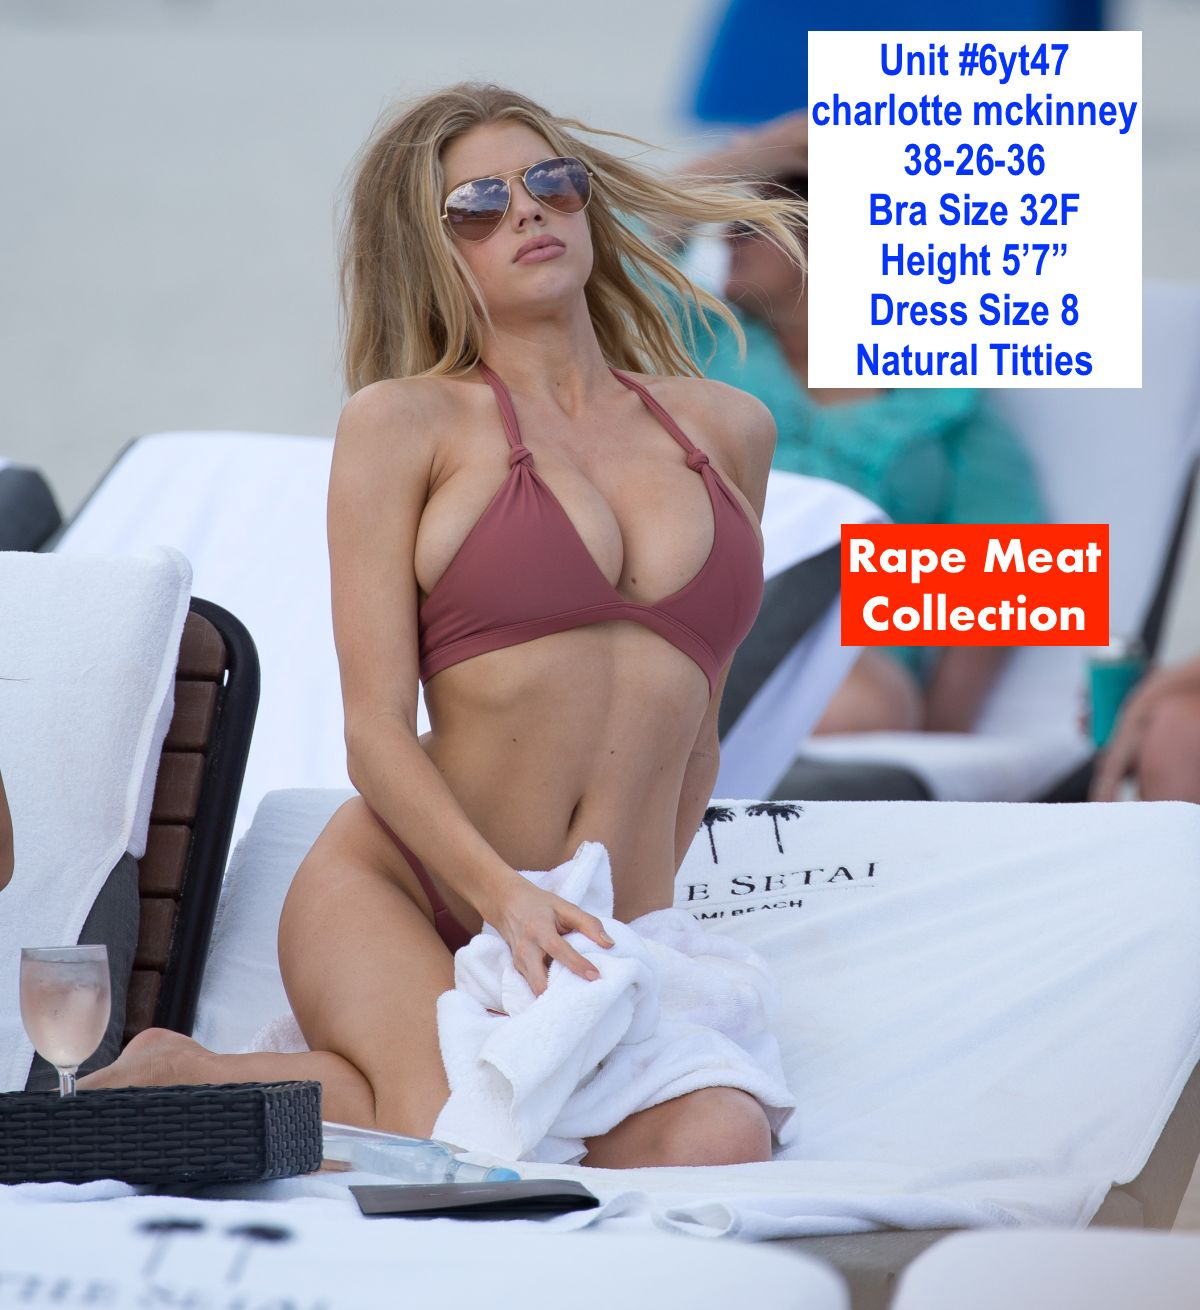 _charlotte-mckinney-in-bikini-at-a-beach-in-miami-02-19-2017_21 2.jpg